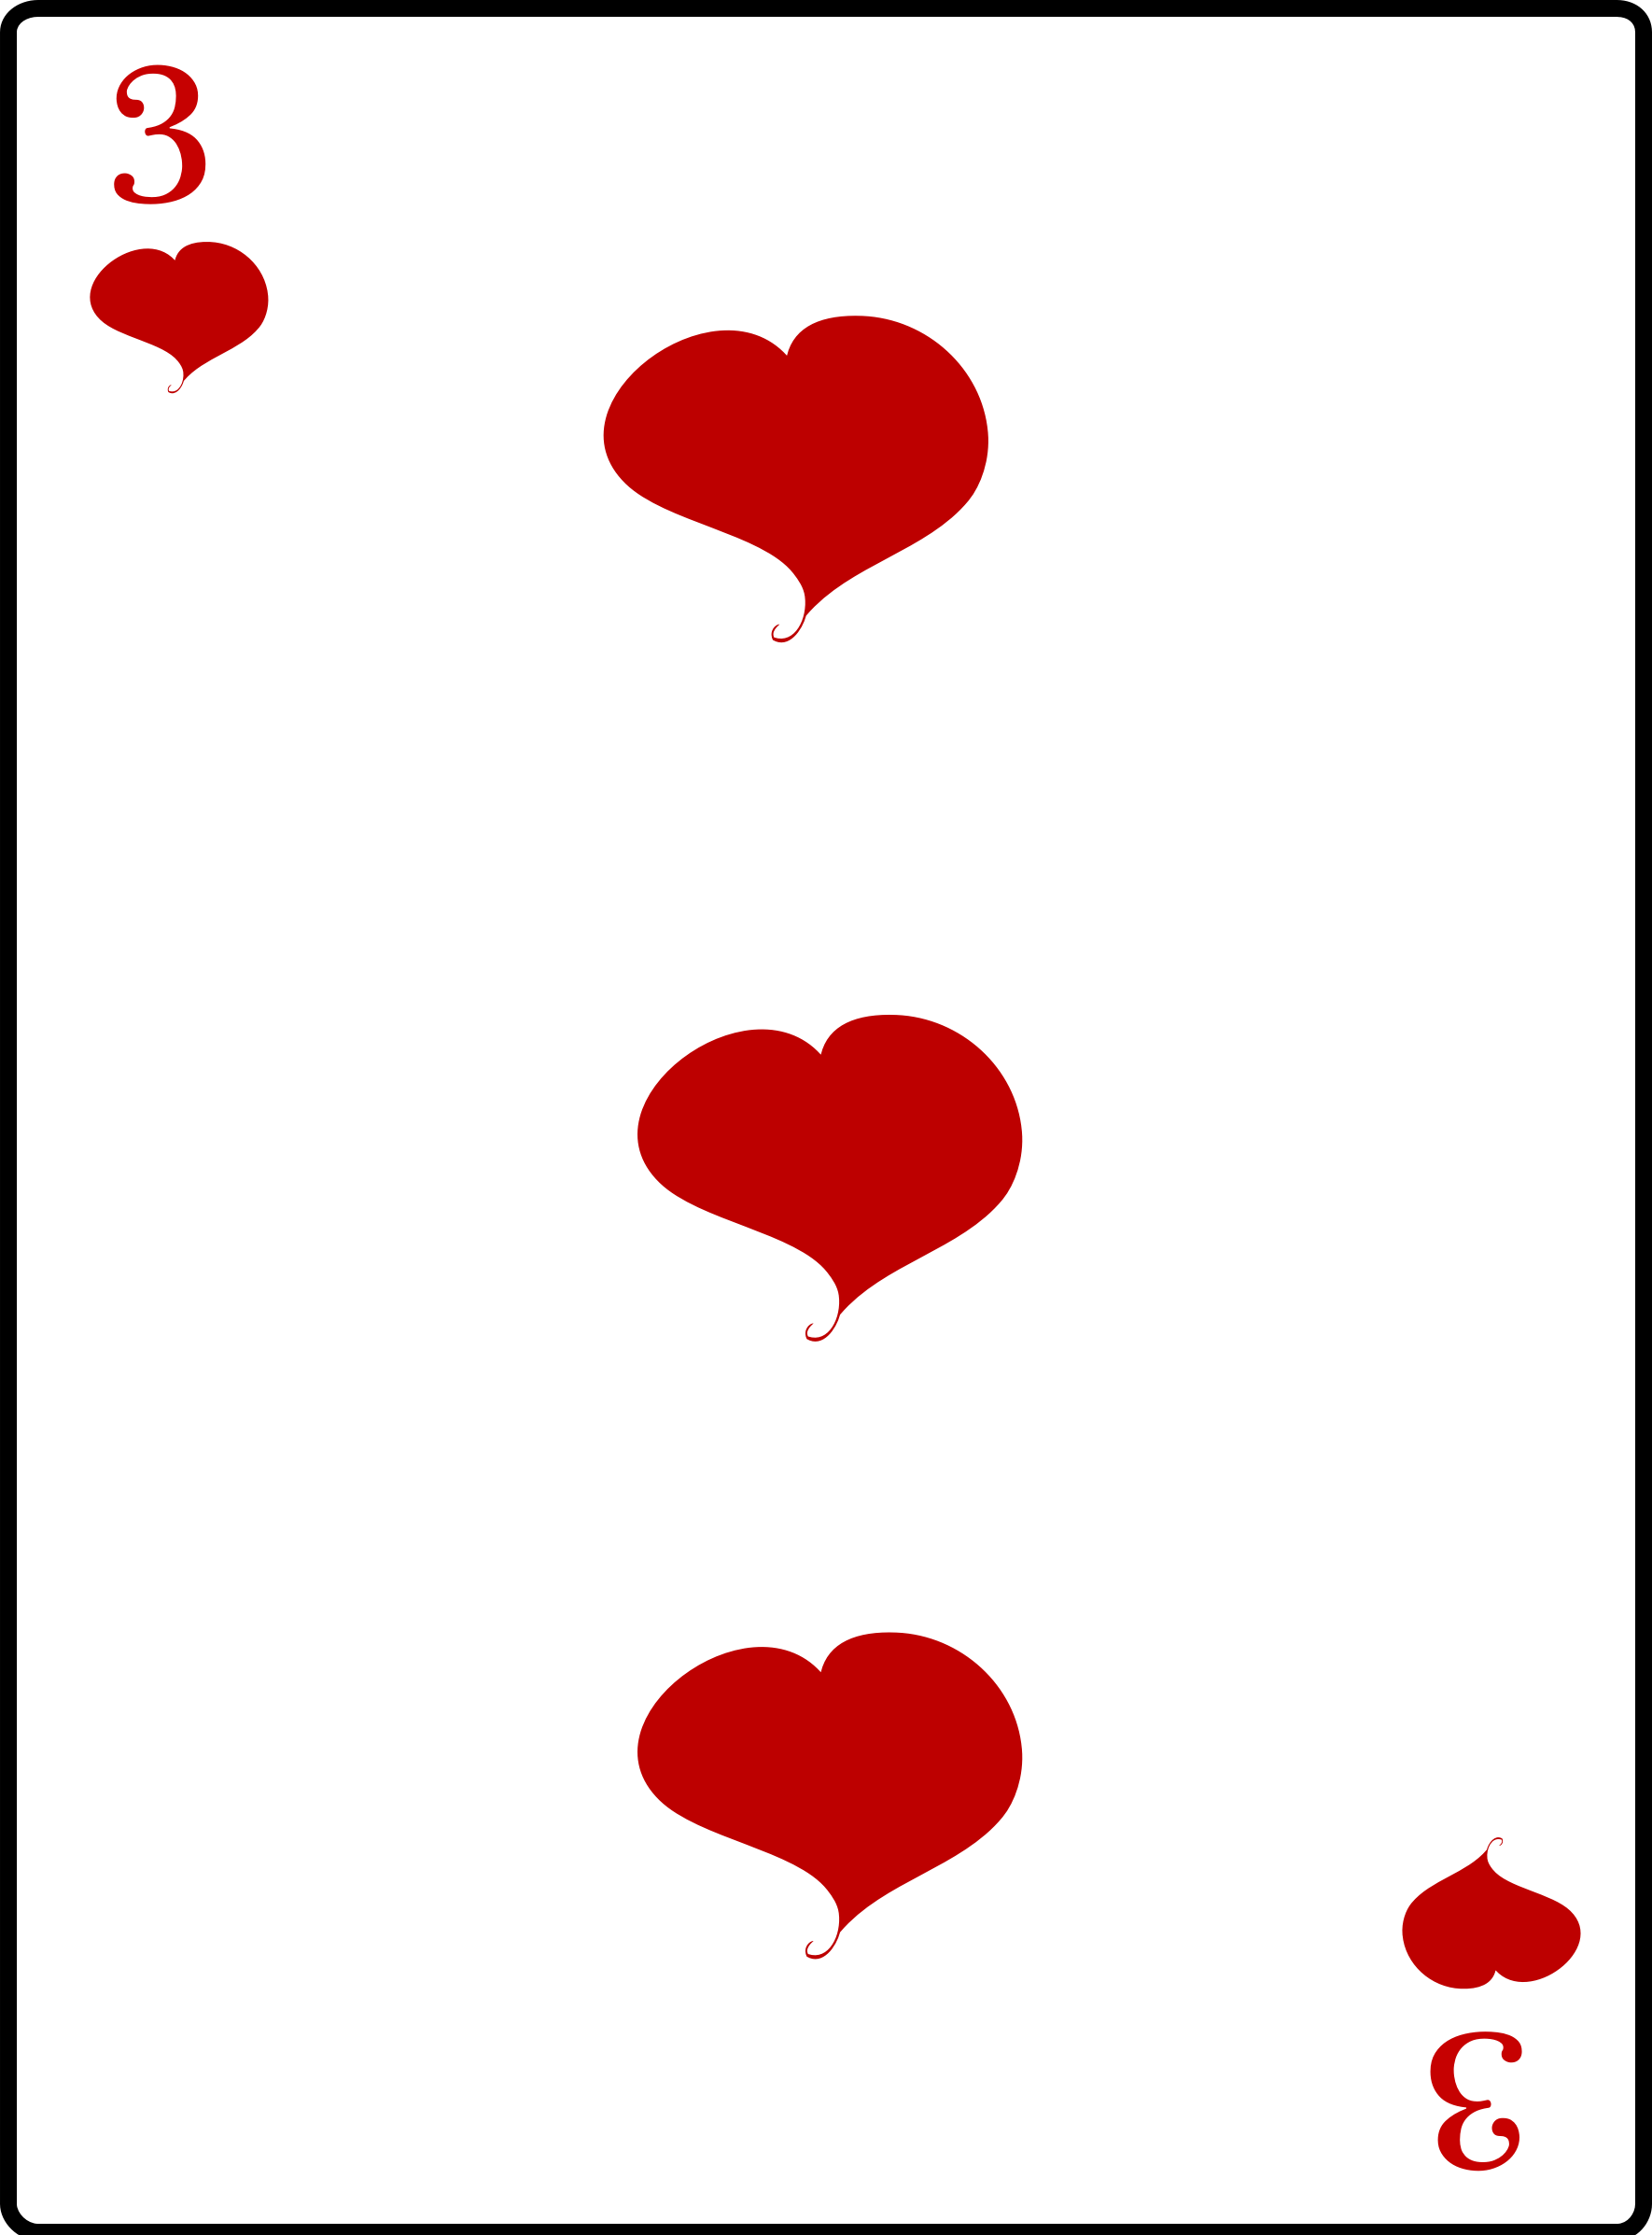 Game of hearts clipart picture black and white download Game of hearts clipart - ClipartFest picture black and white download